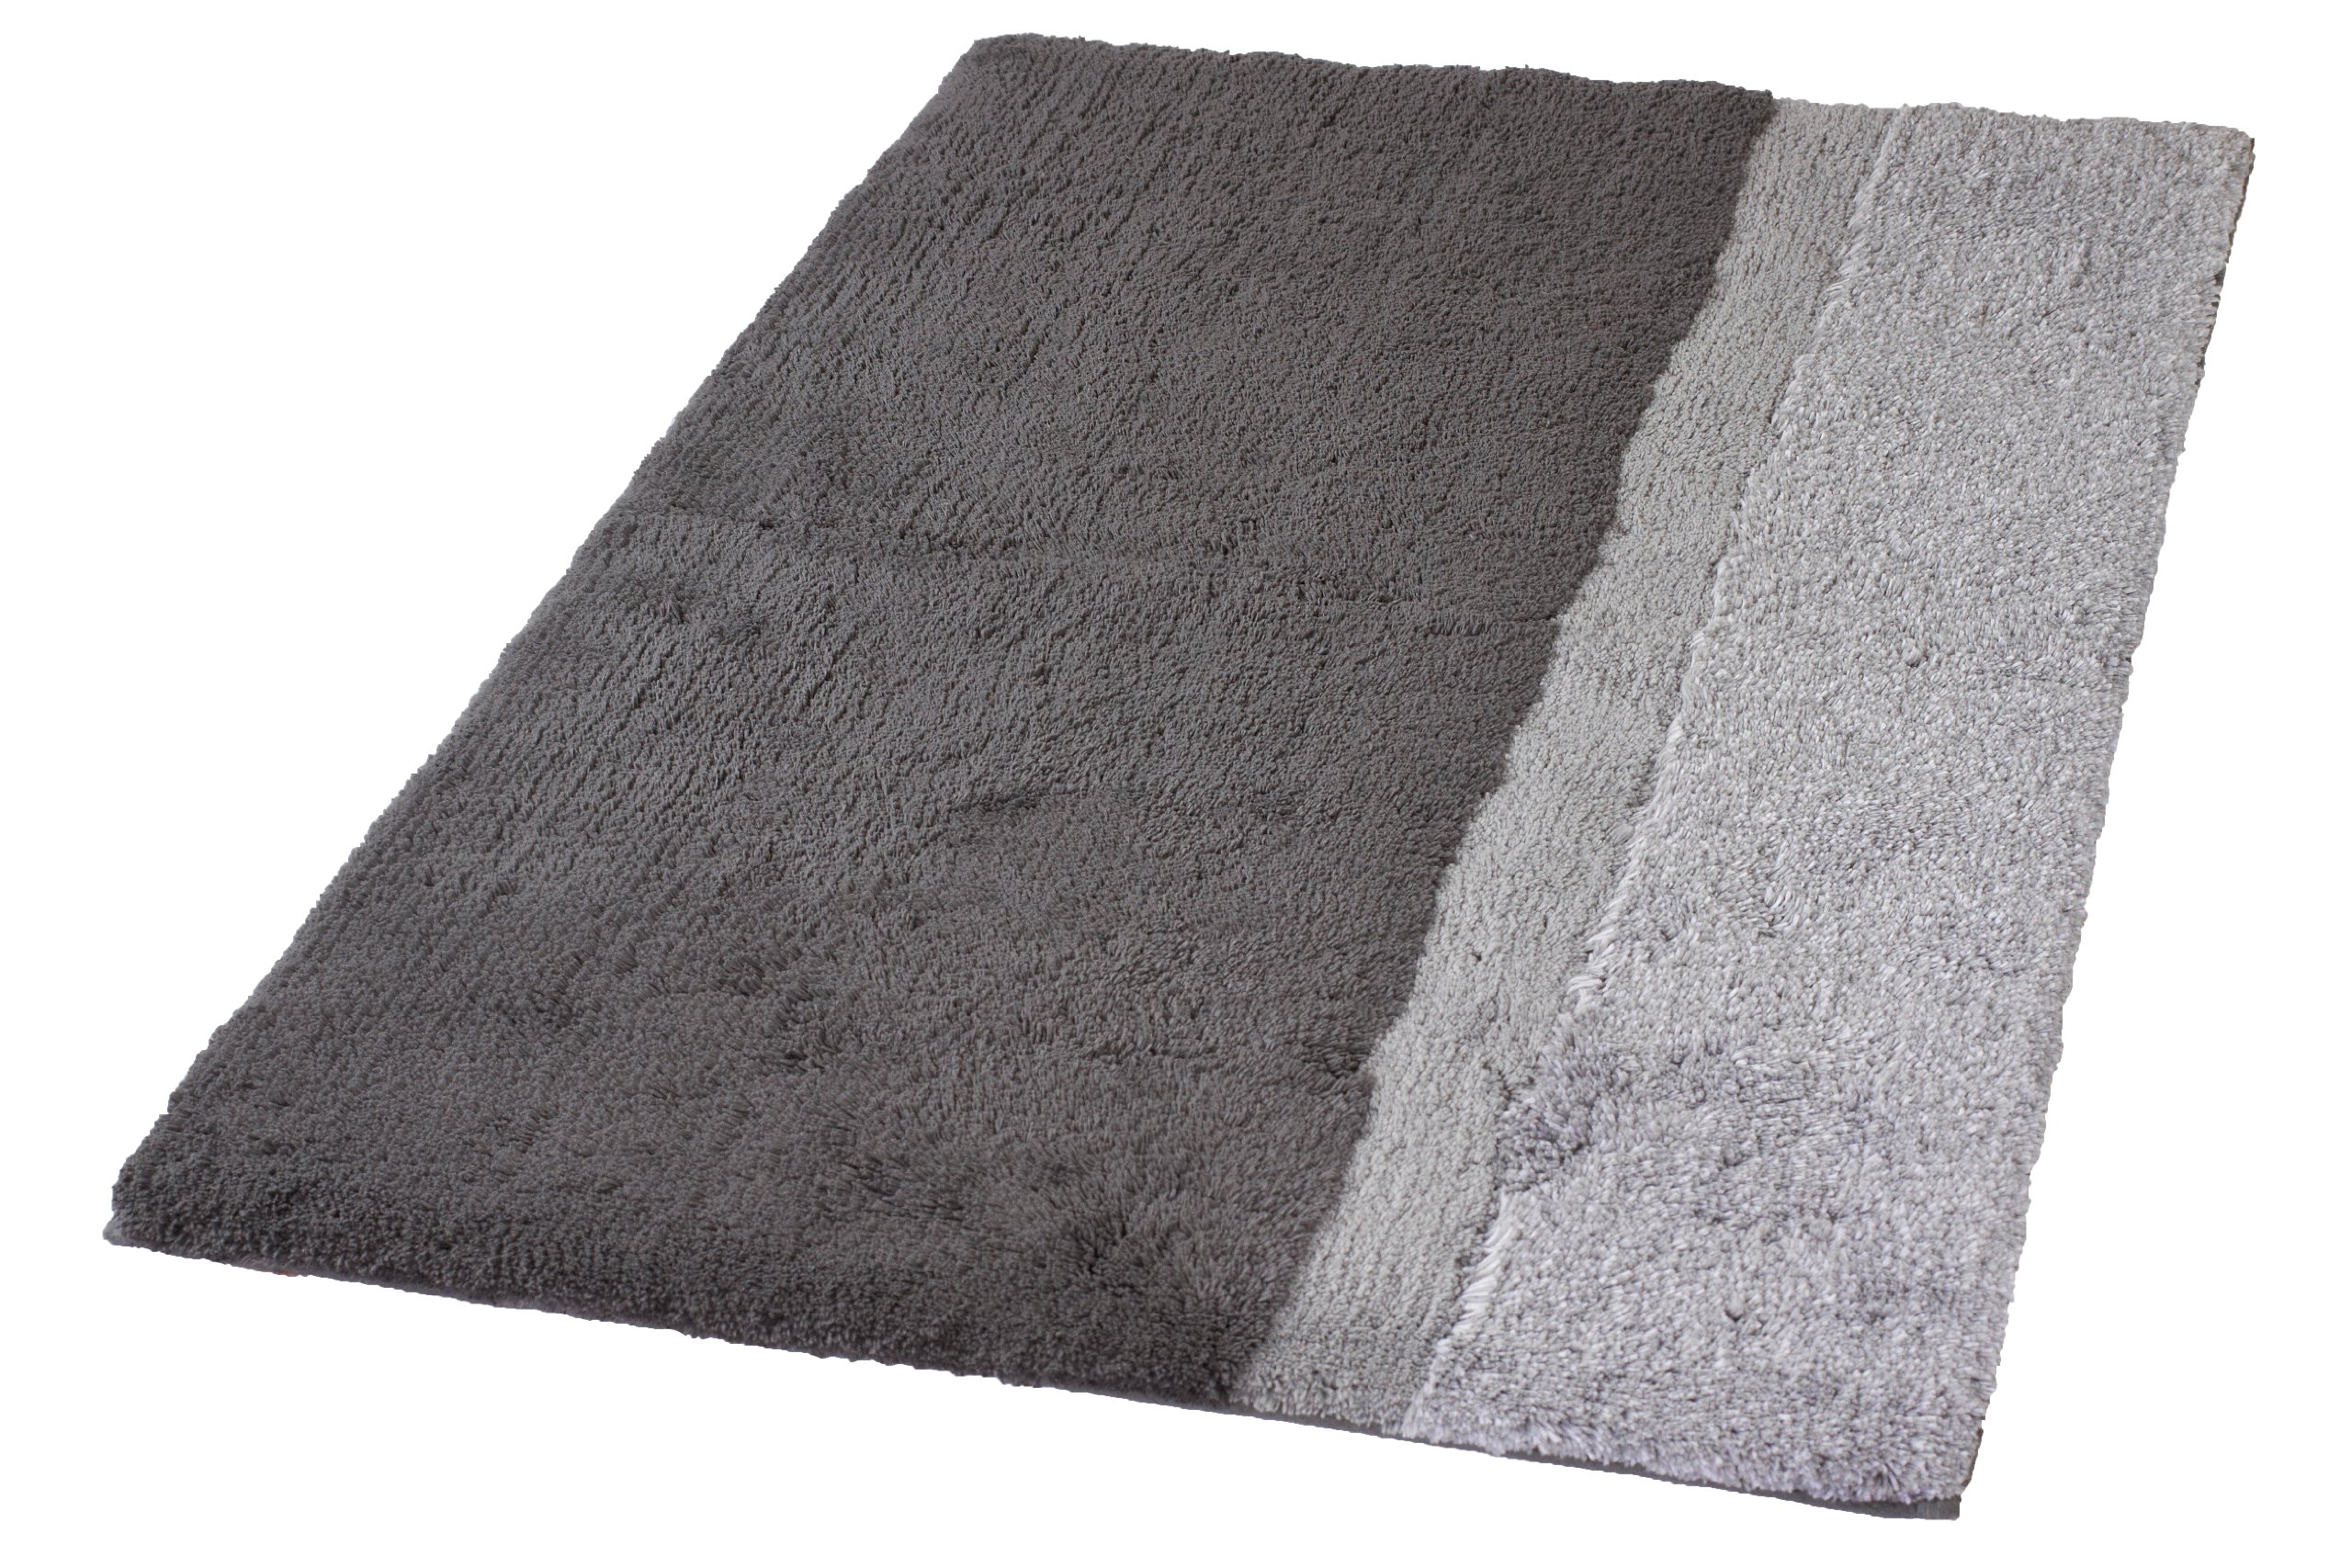 Kleine Wolke Eco Living Life Non Slip Cotton Bathroom Rug (27.6'' x 47.2'', Anthracite grey)